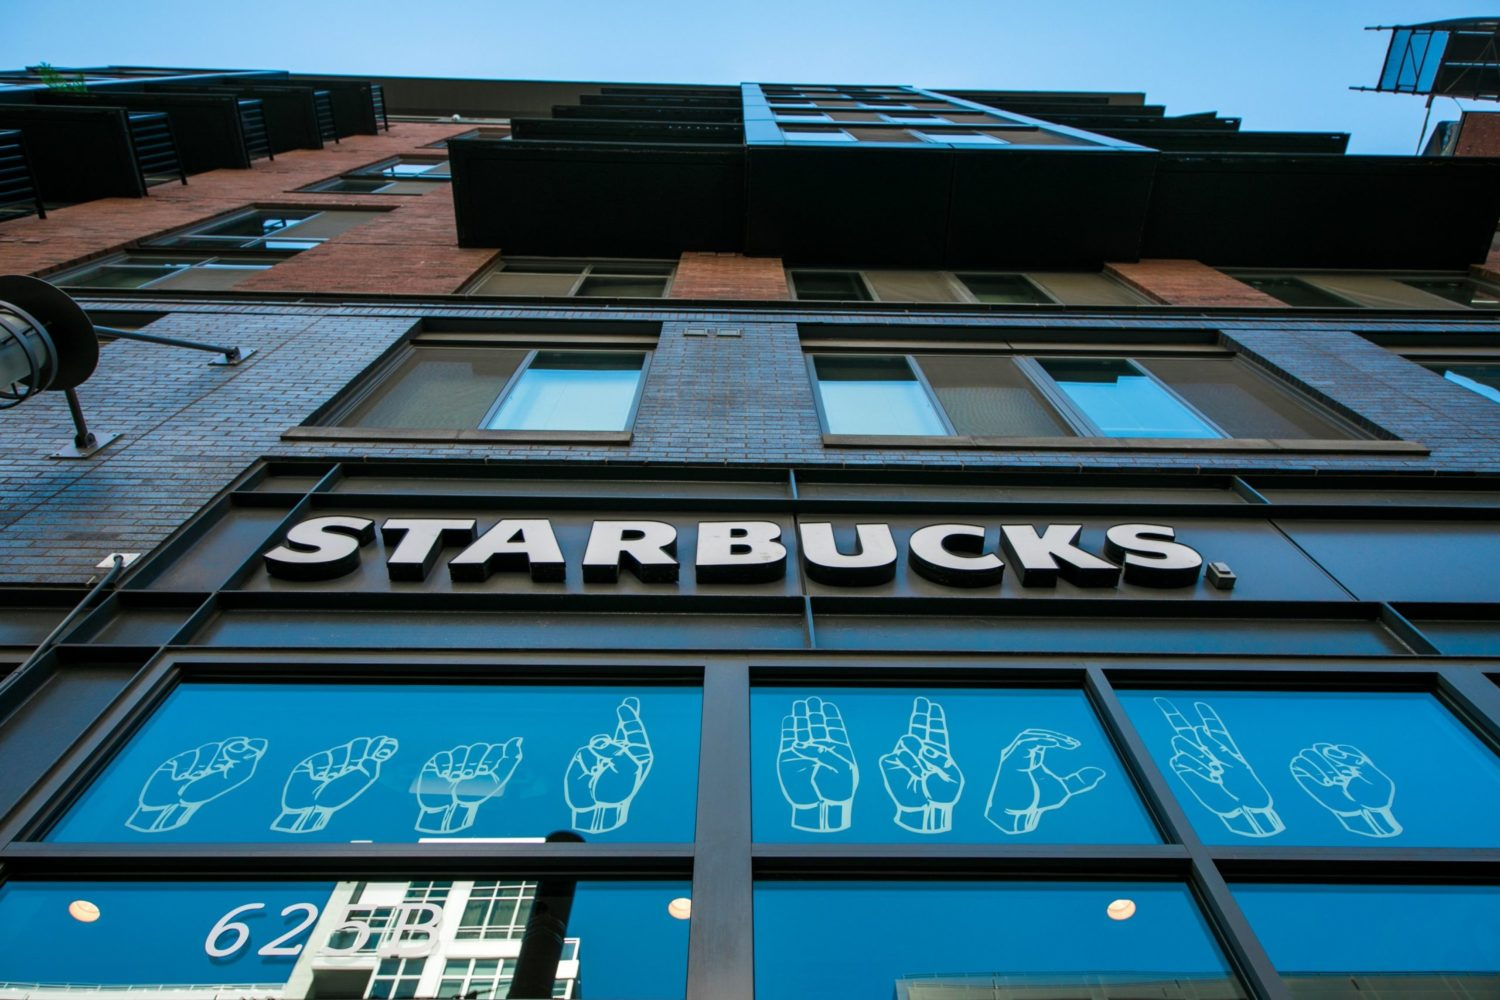 Starbucks' first US signing location. Photograph by Joshua Trujillo, Starbucks.